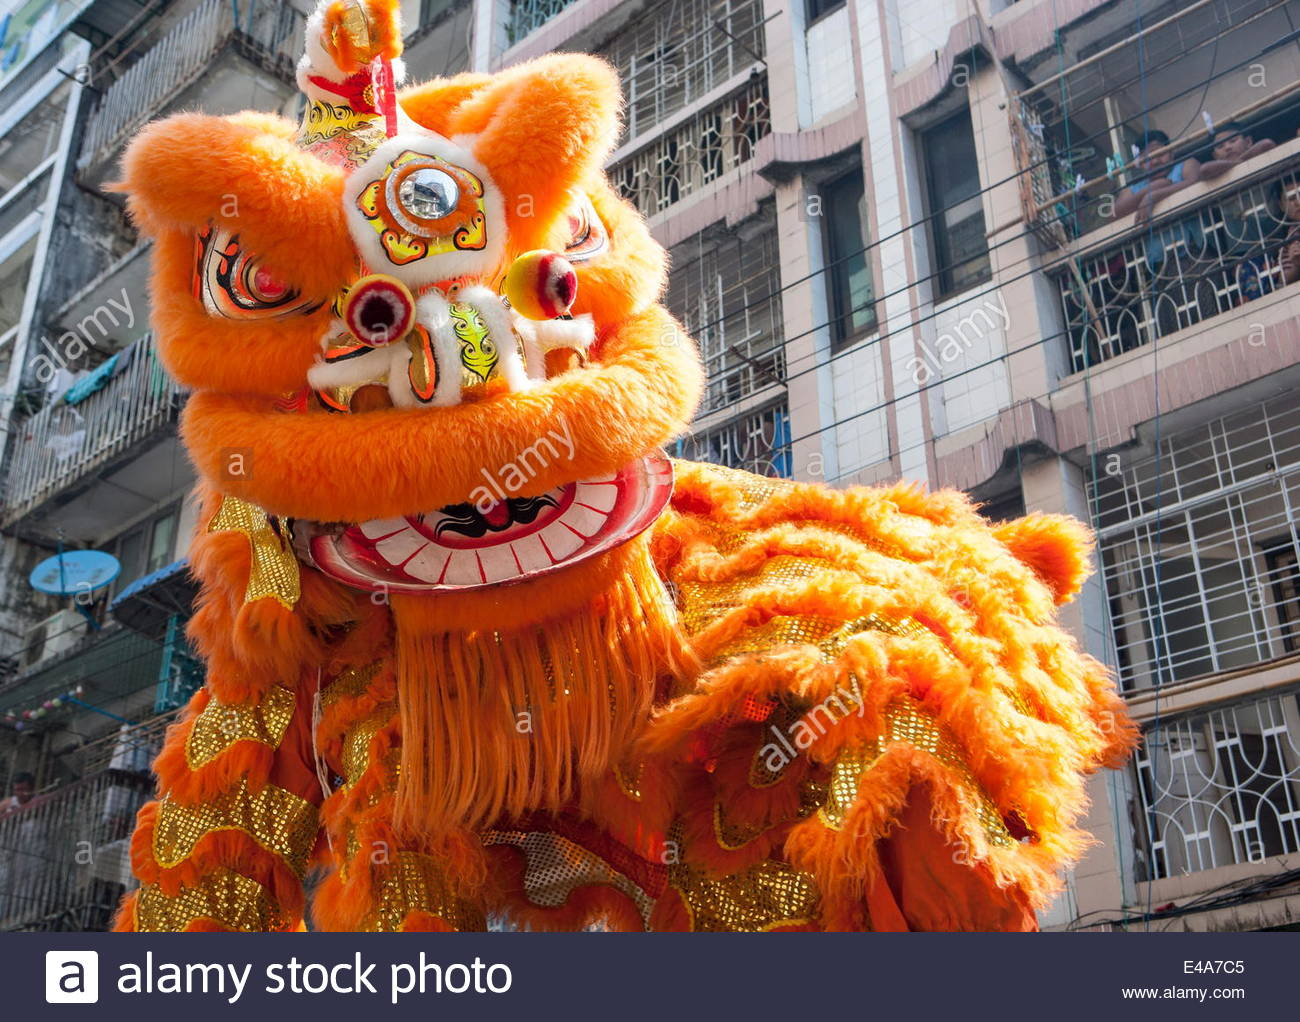 Uncategorized Chinese New Year Lion chinese lunar new year lion dance celebrations spring festival chinatown yangon rangoon myanmar burma asia l